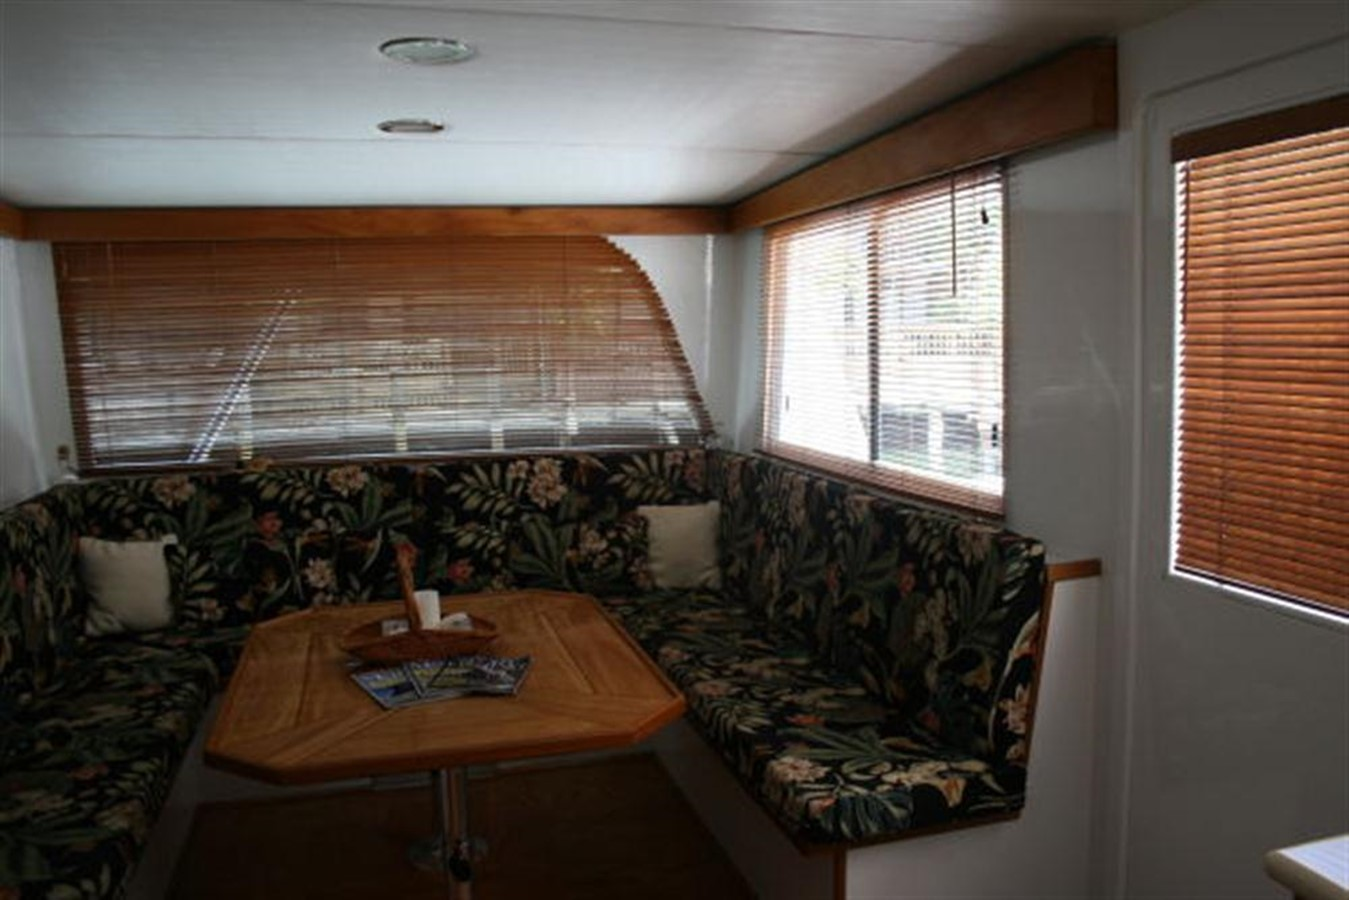 SALON  DINING TABLE 1998 CUSTOM Mick Jarrod PowerCat Sportfisher/Dive Boat Catamaran 156666